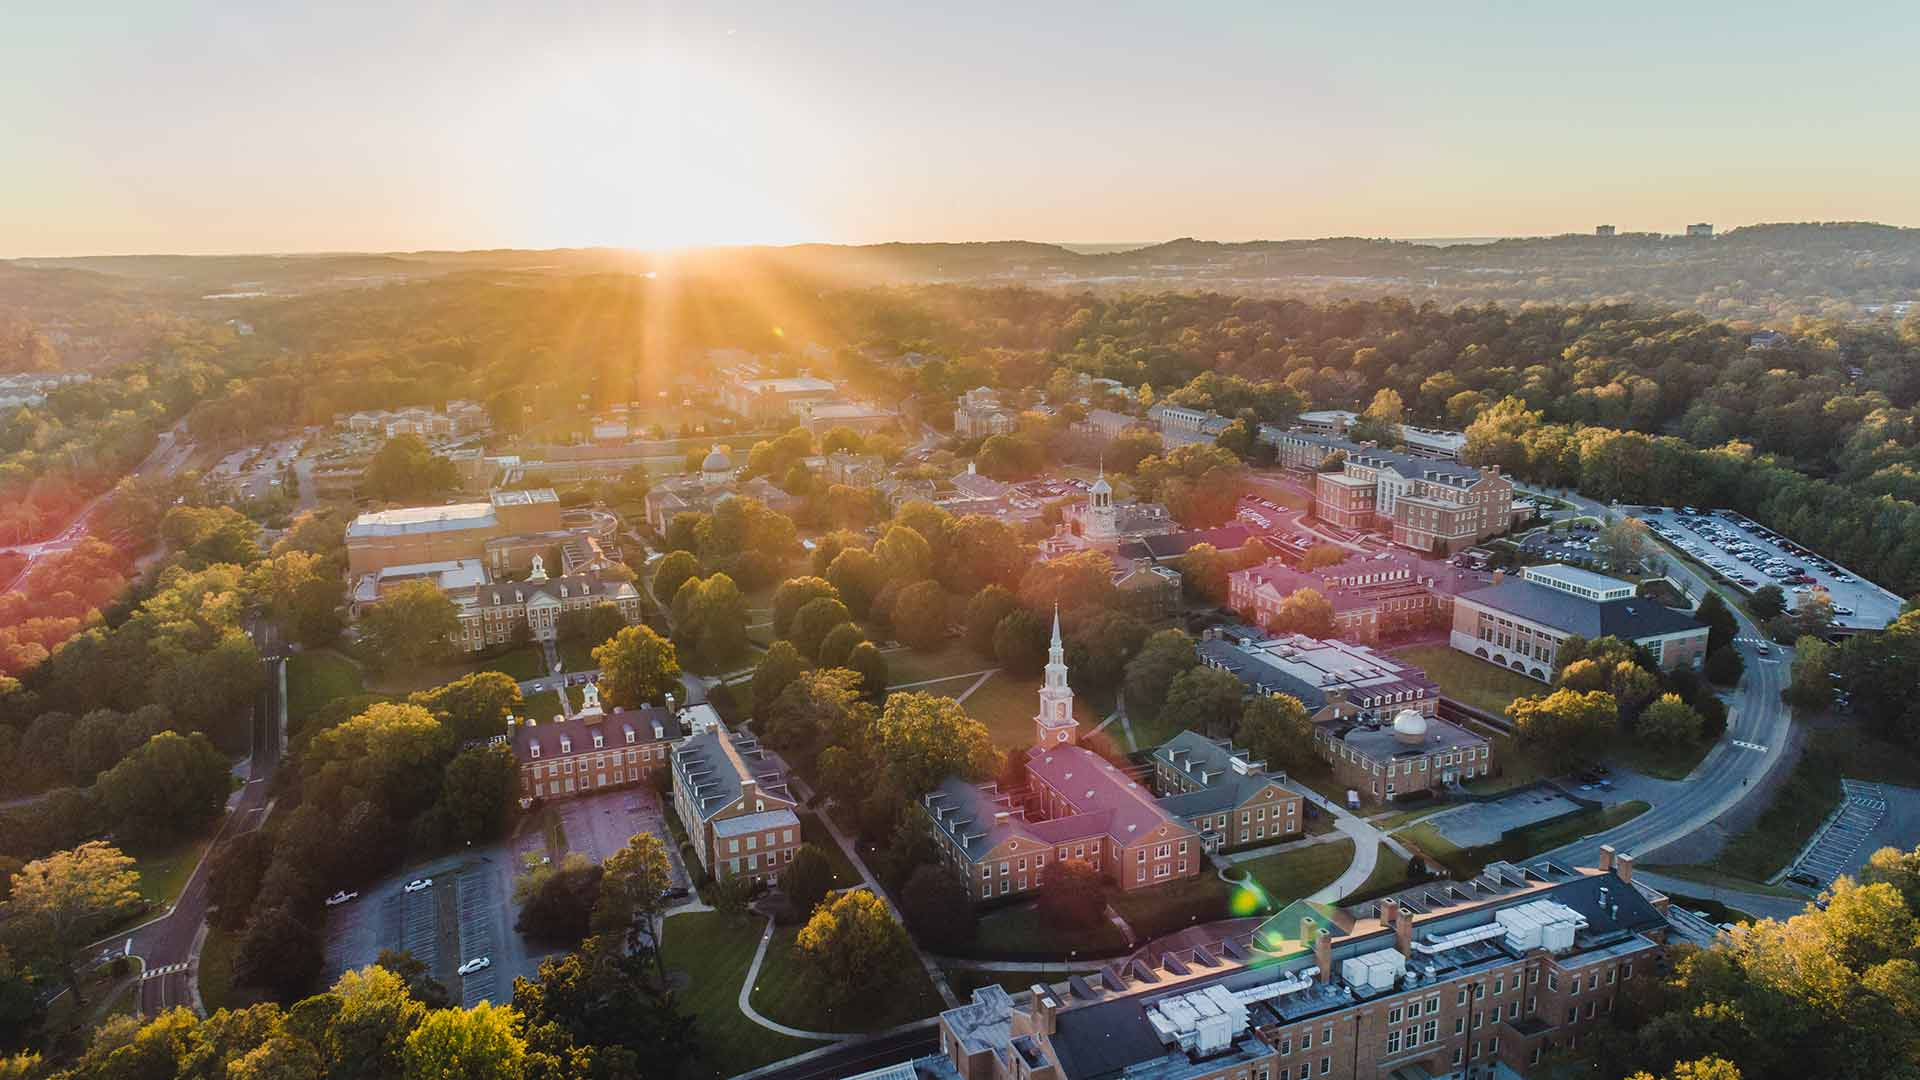 drone view of campus toward setting sun